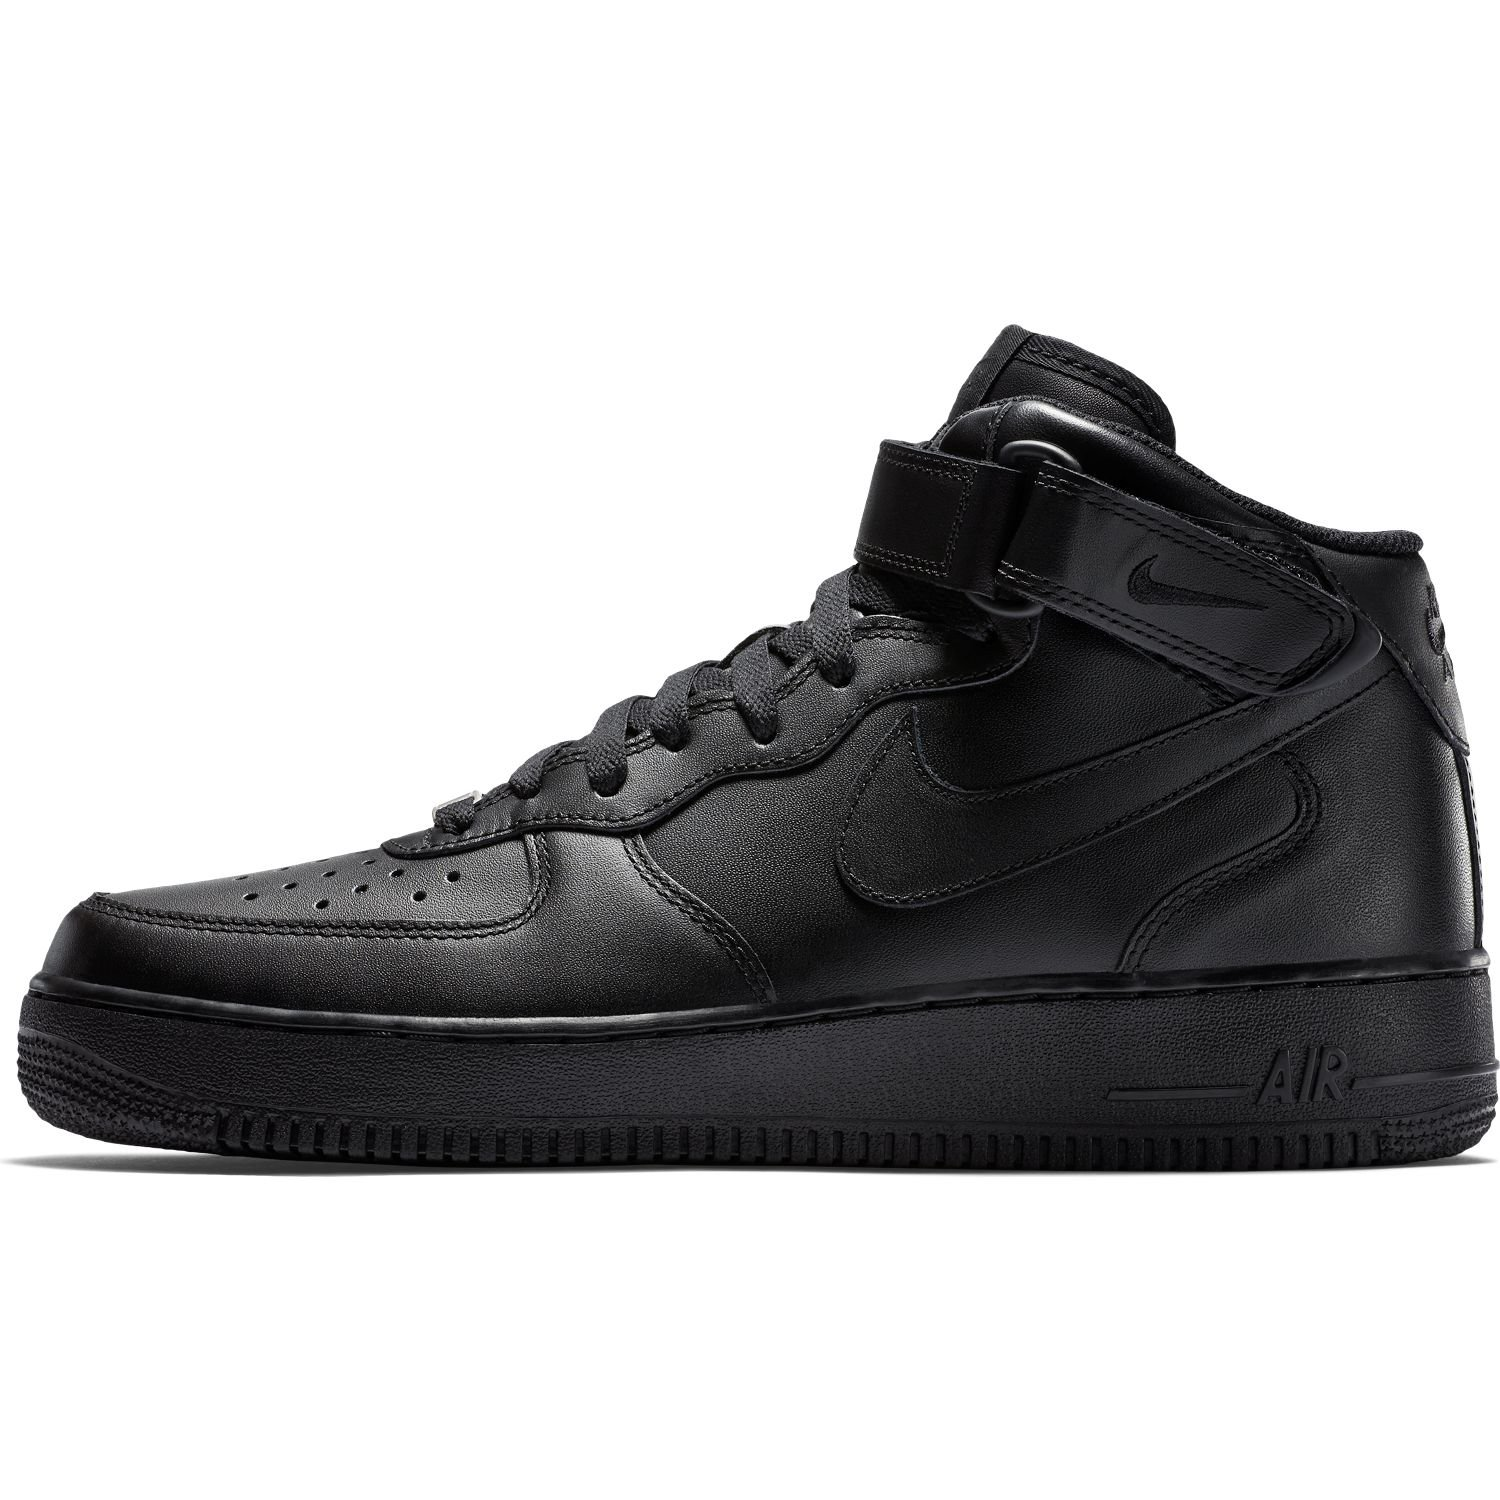 various colors 90b57 16ffc ... BUTY MĘSKIE NIKE AIR FORCE 1 MID 07 ALL BLACK 315123-001 ...